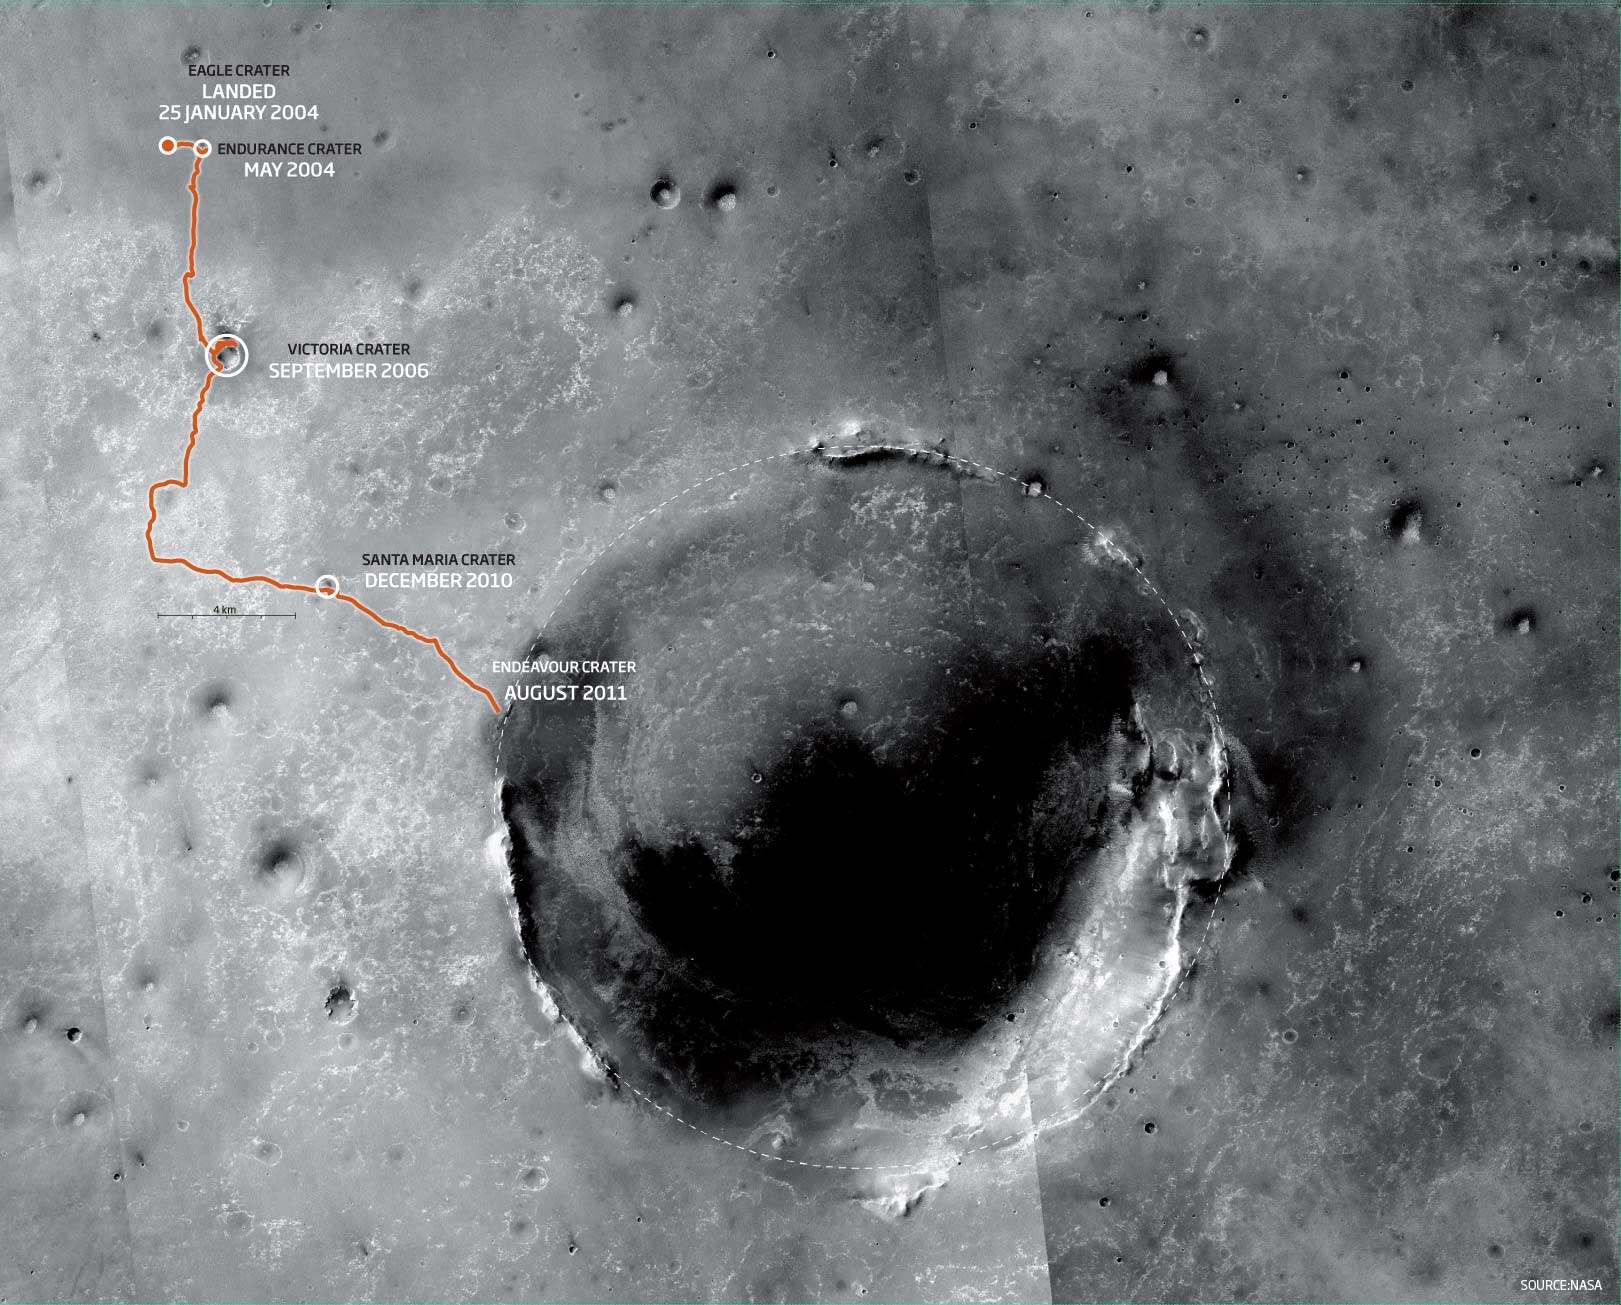 Mars rover reaches rim of vast, ancient crater